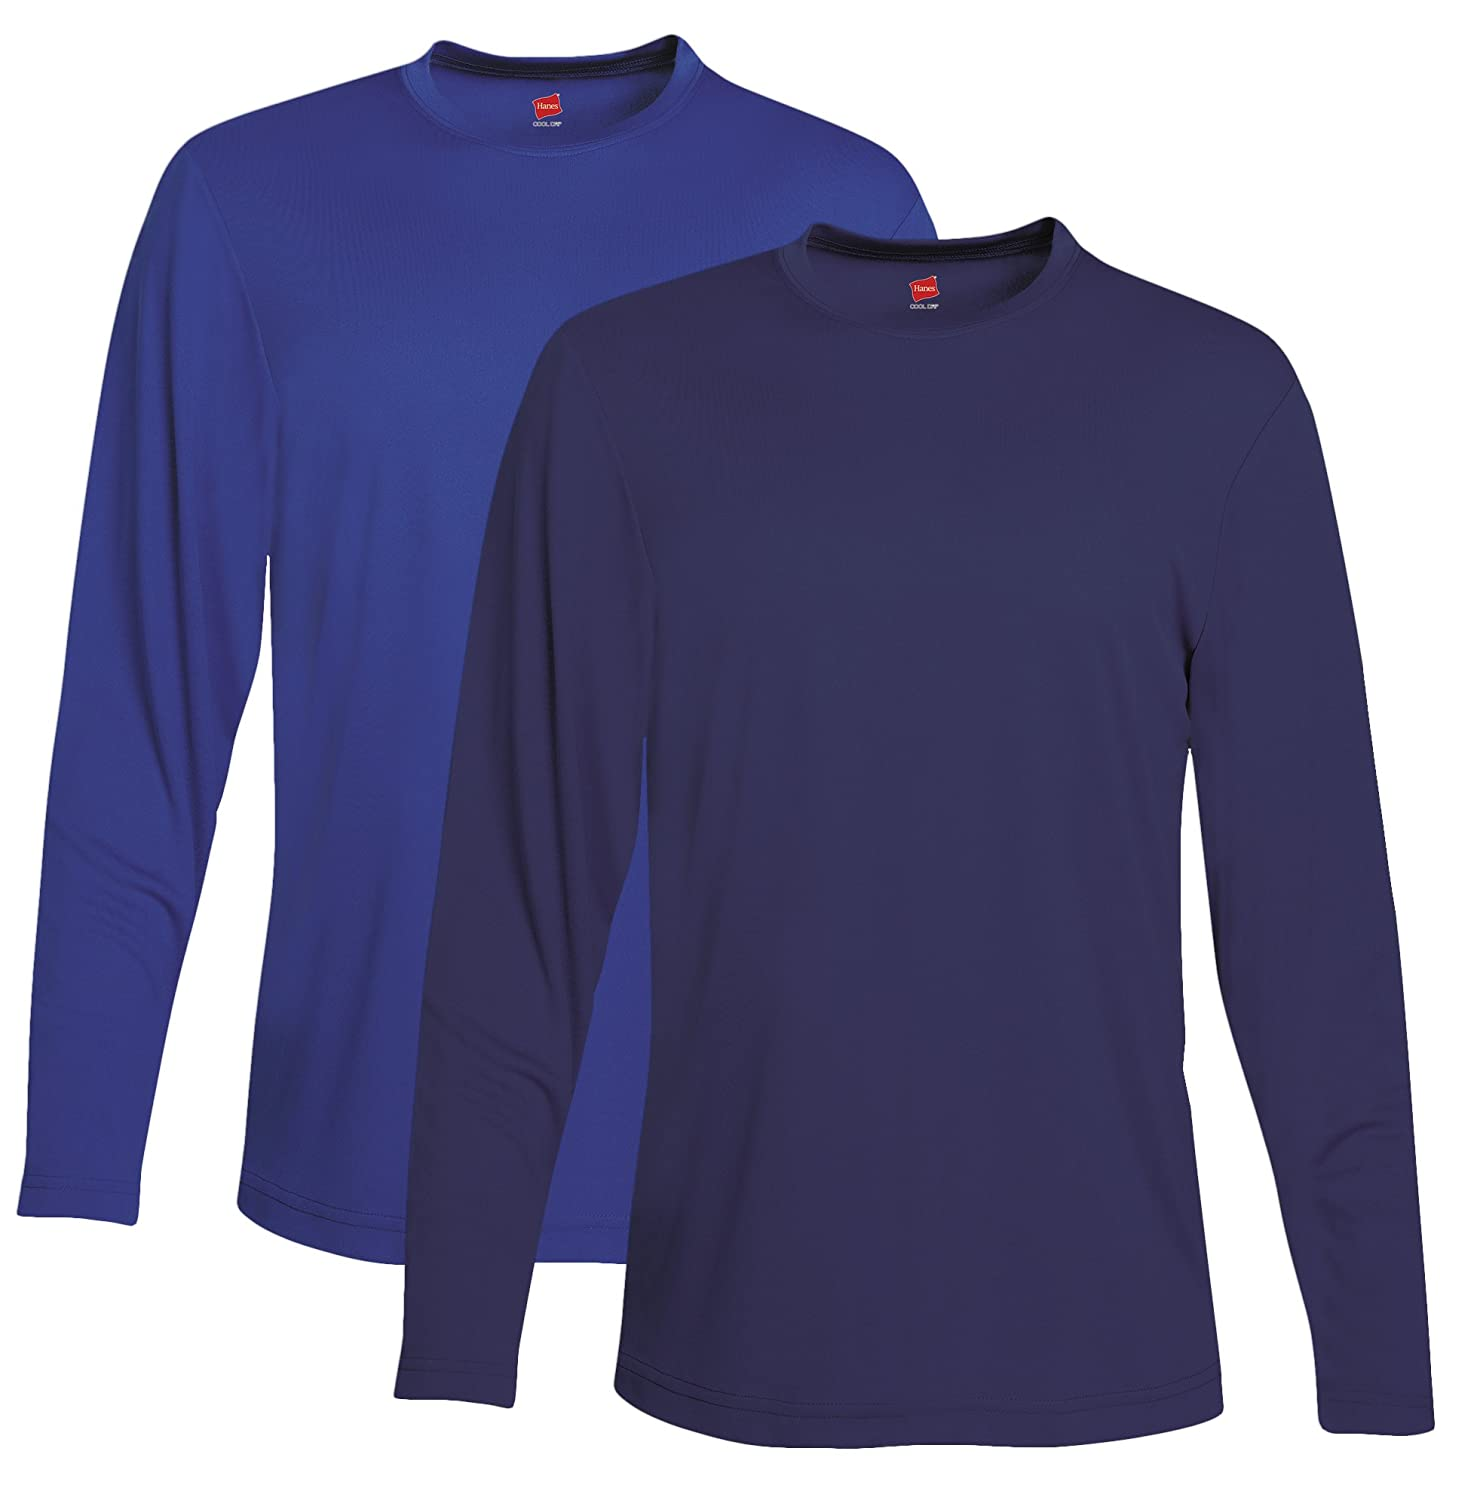 3022aa5ca Hanes Men s Two Pack of Long-Sleeve Cool Dri T-Shirts at Amazon Men s  Clothing store